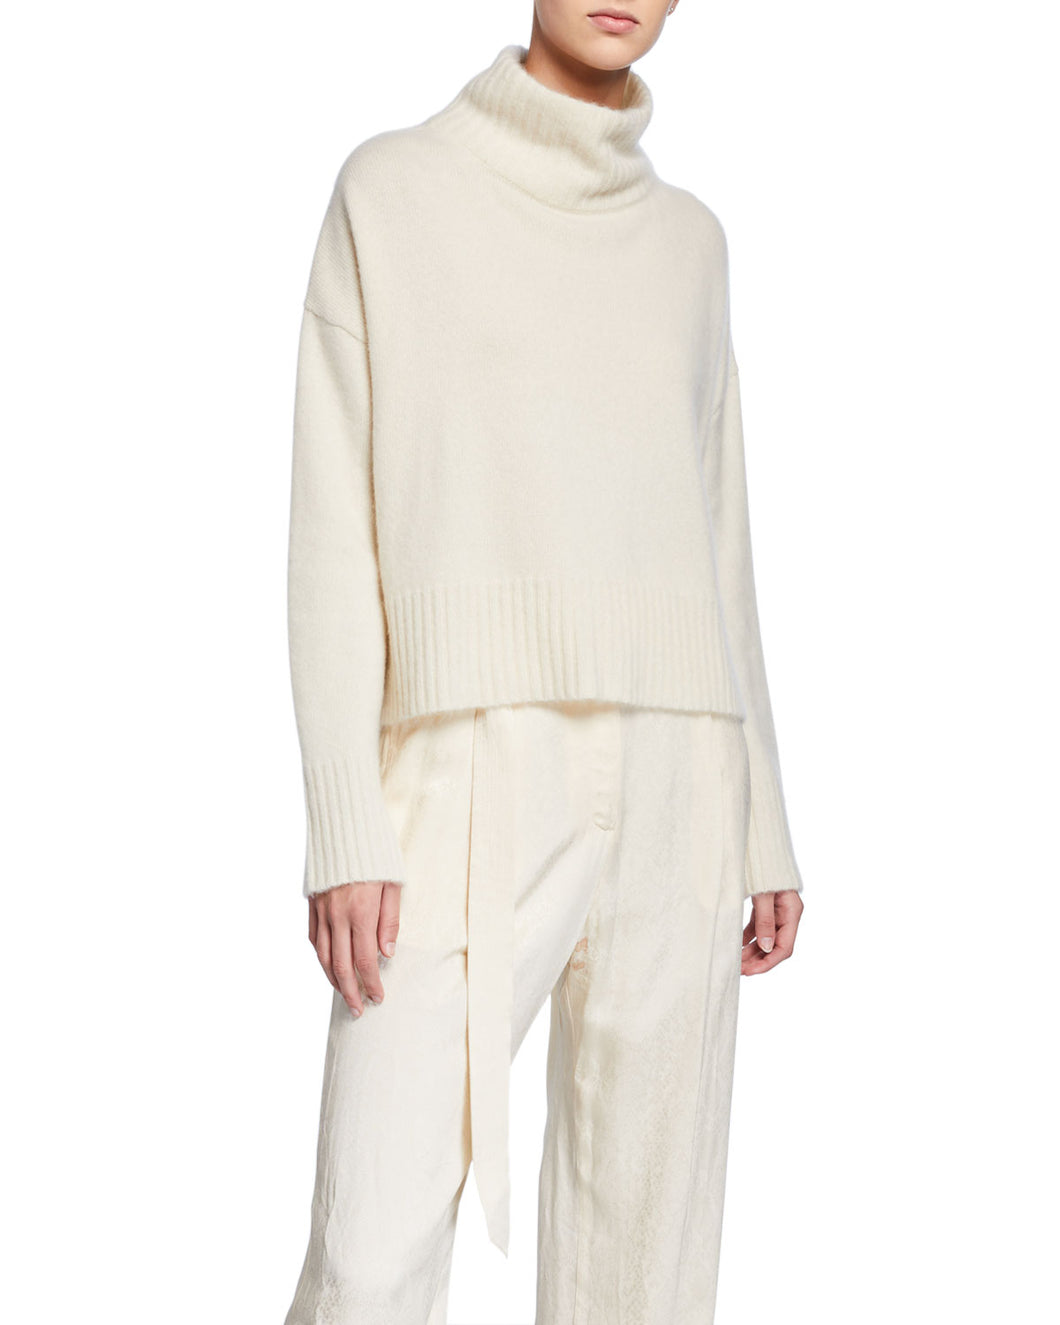 SALLY LAPOINTE - Cashmere Turtleneck Sweater